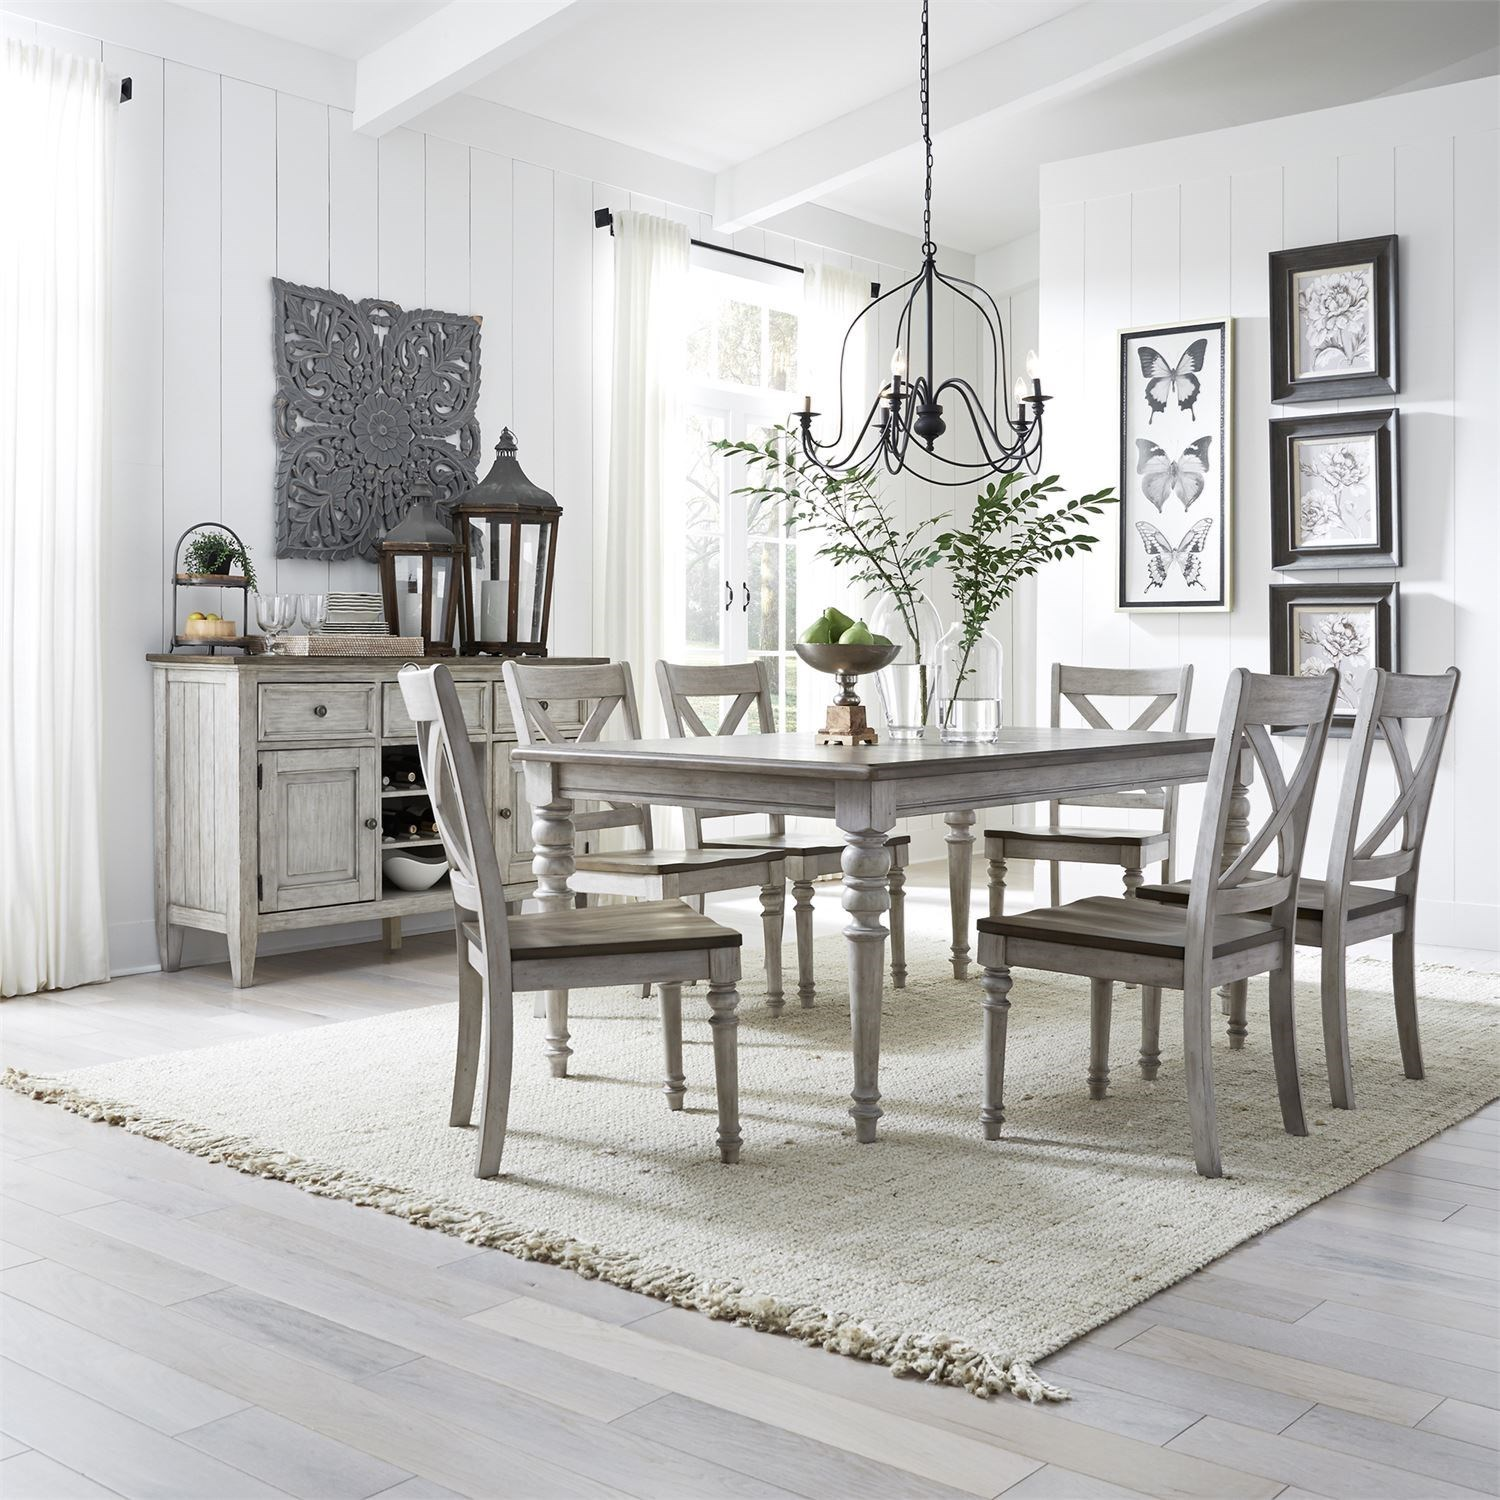 Cottage Lane Dining Room Group by Liberty Furniture at Zak's Home